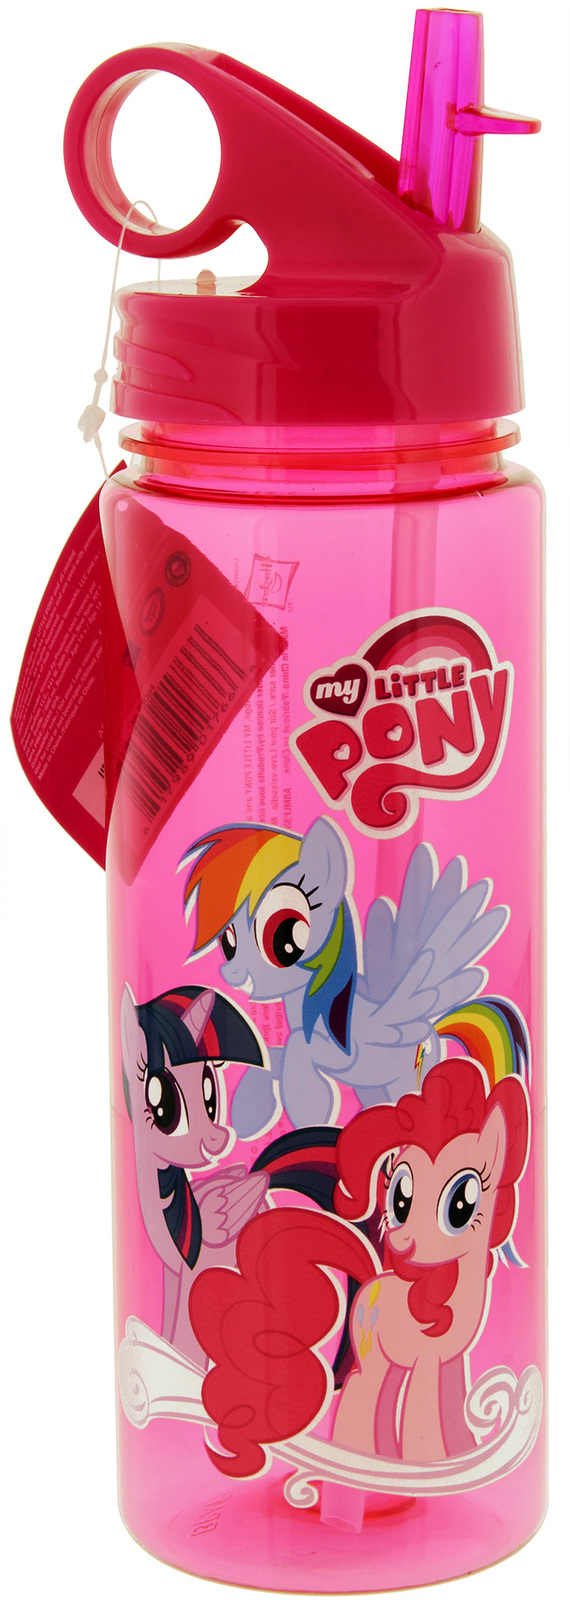 e233670733 My Little Pony: Friendship is Magic - Tritan Water Bottle | at ...